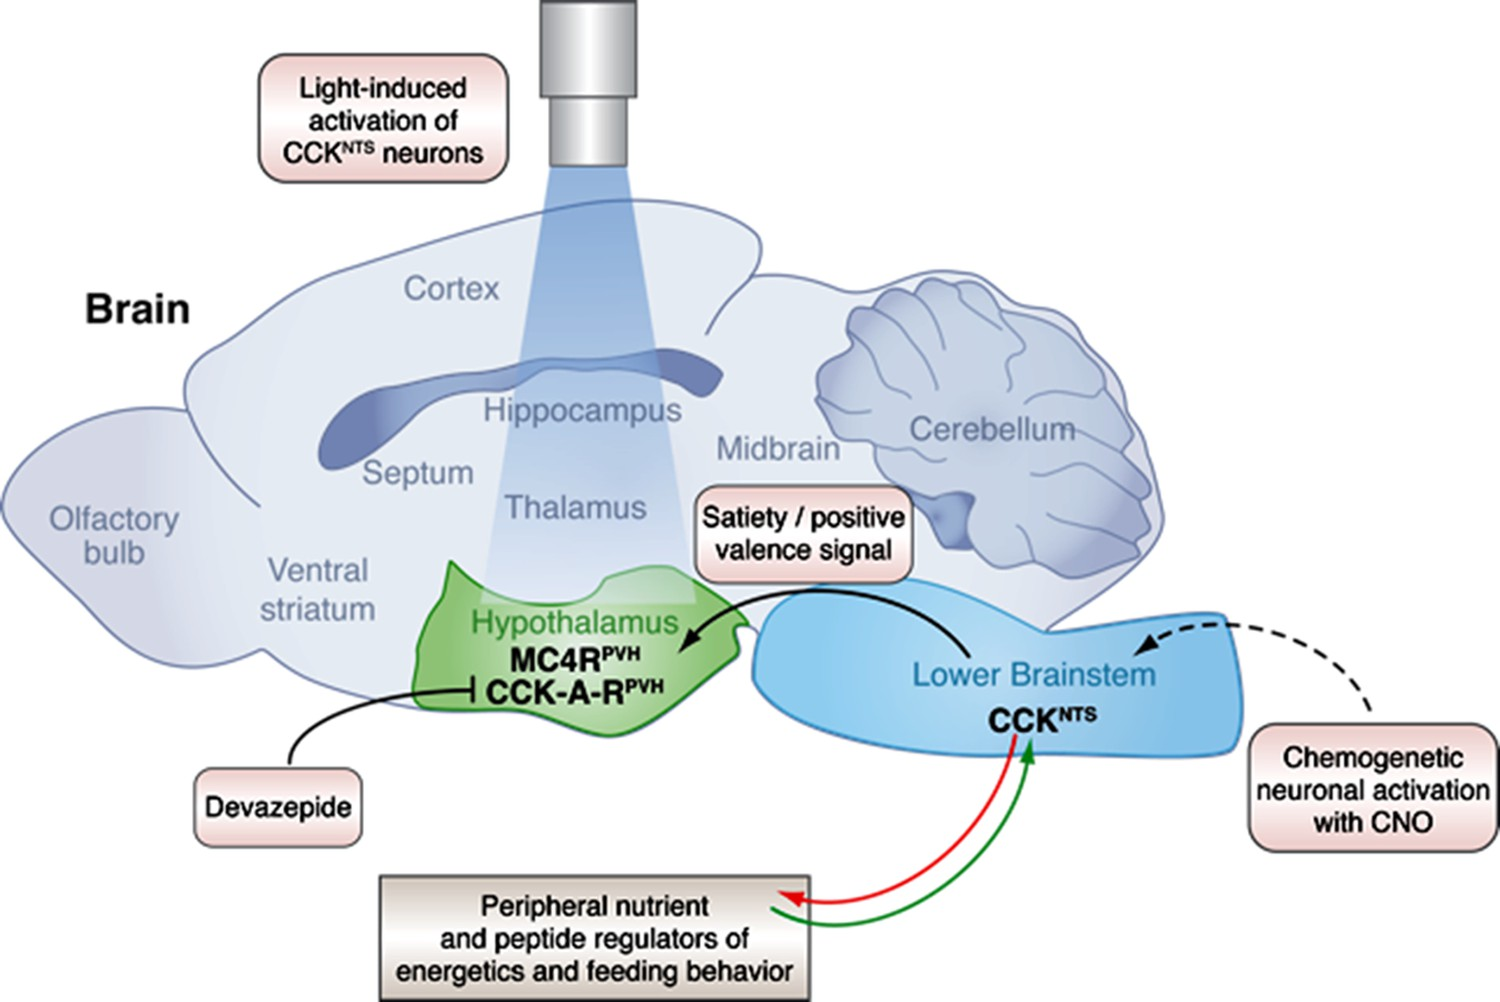 hight resolution of a neural circuit in the brainstem integrates signals from peripheral tissues to control feeding behavior and energy balance